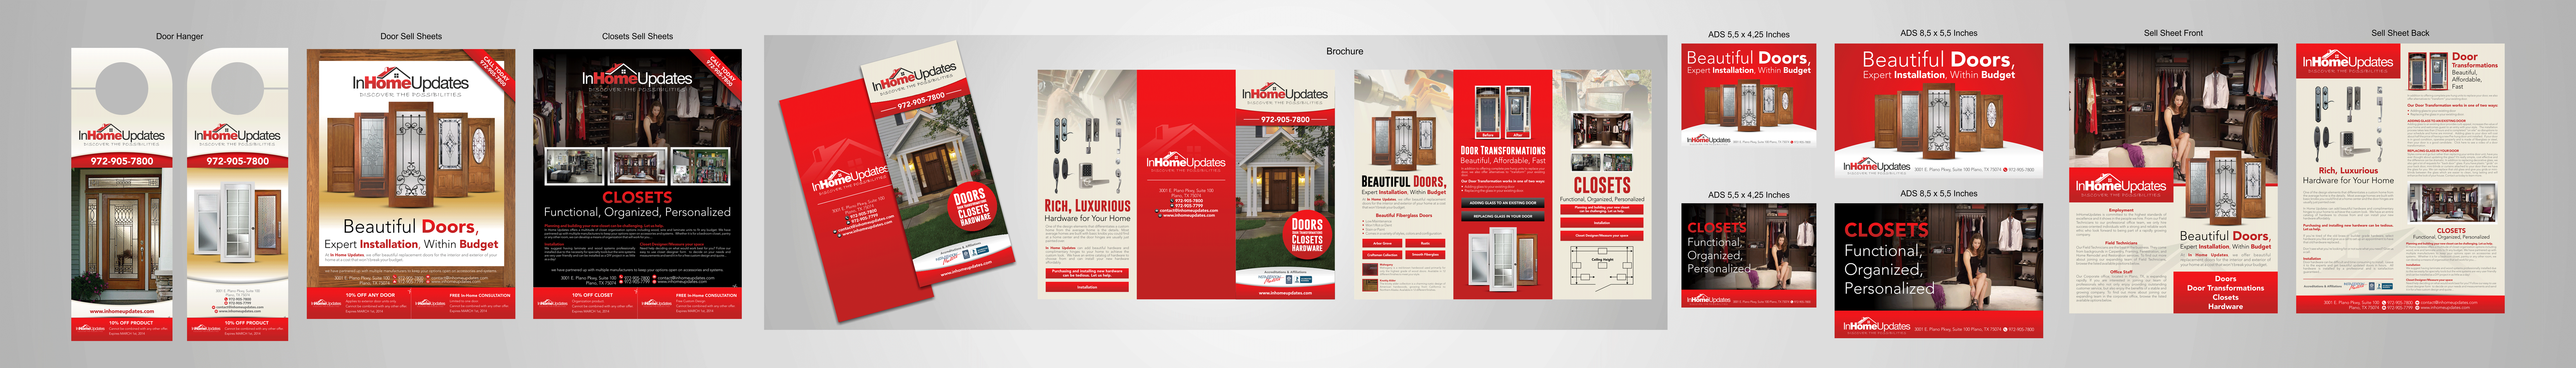 Marketing Materials for a Home Improvement Company - Home and Garden